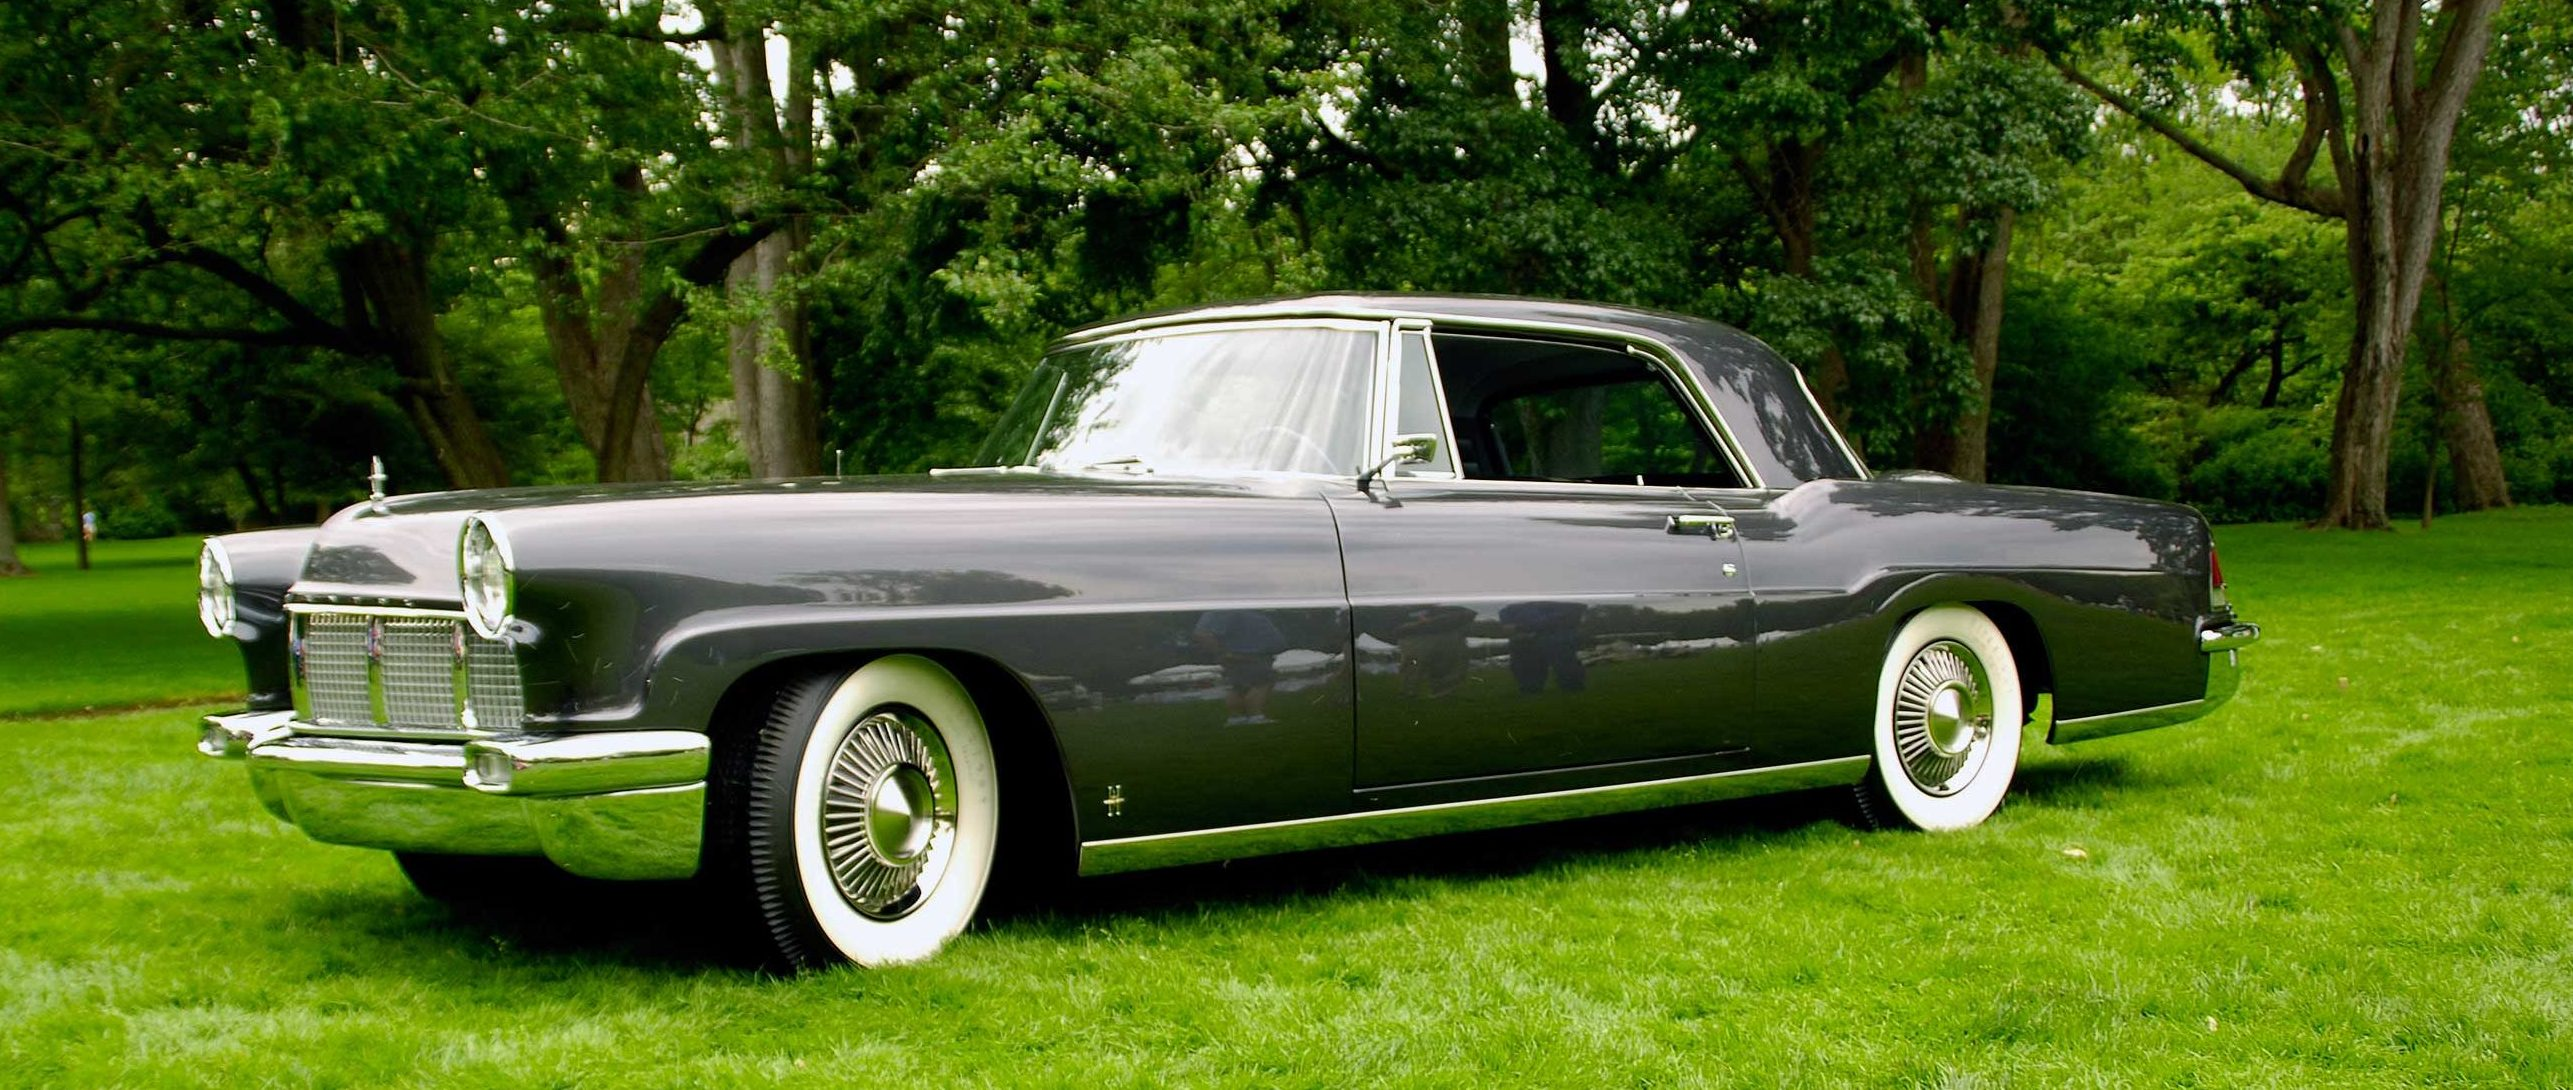 1956 Continental Mark II C56 J 3348